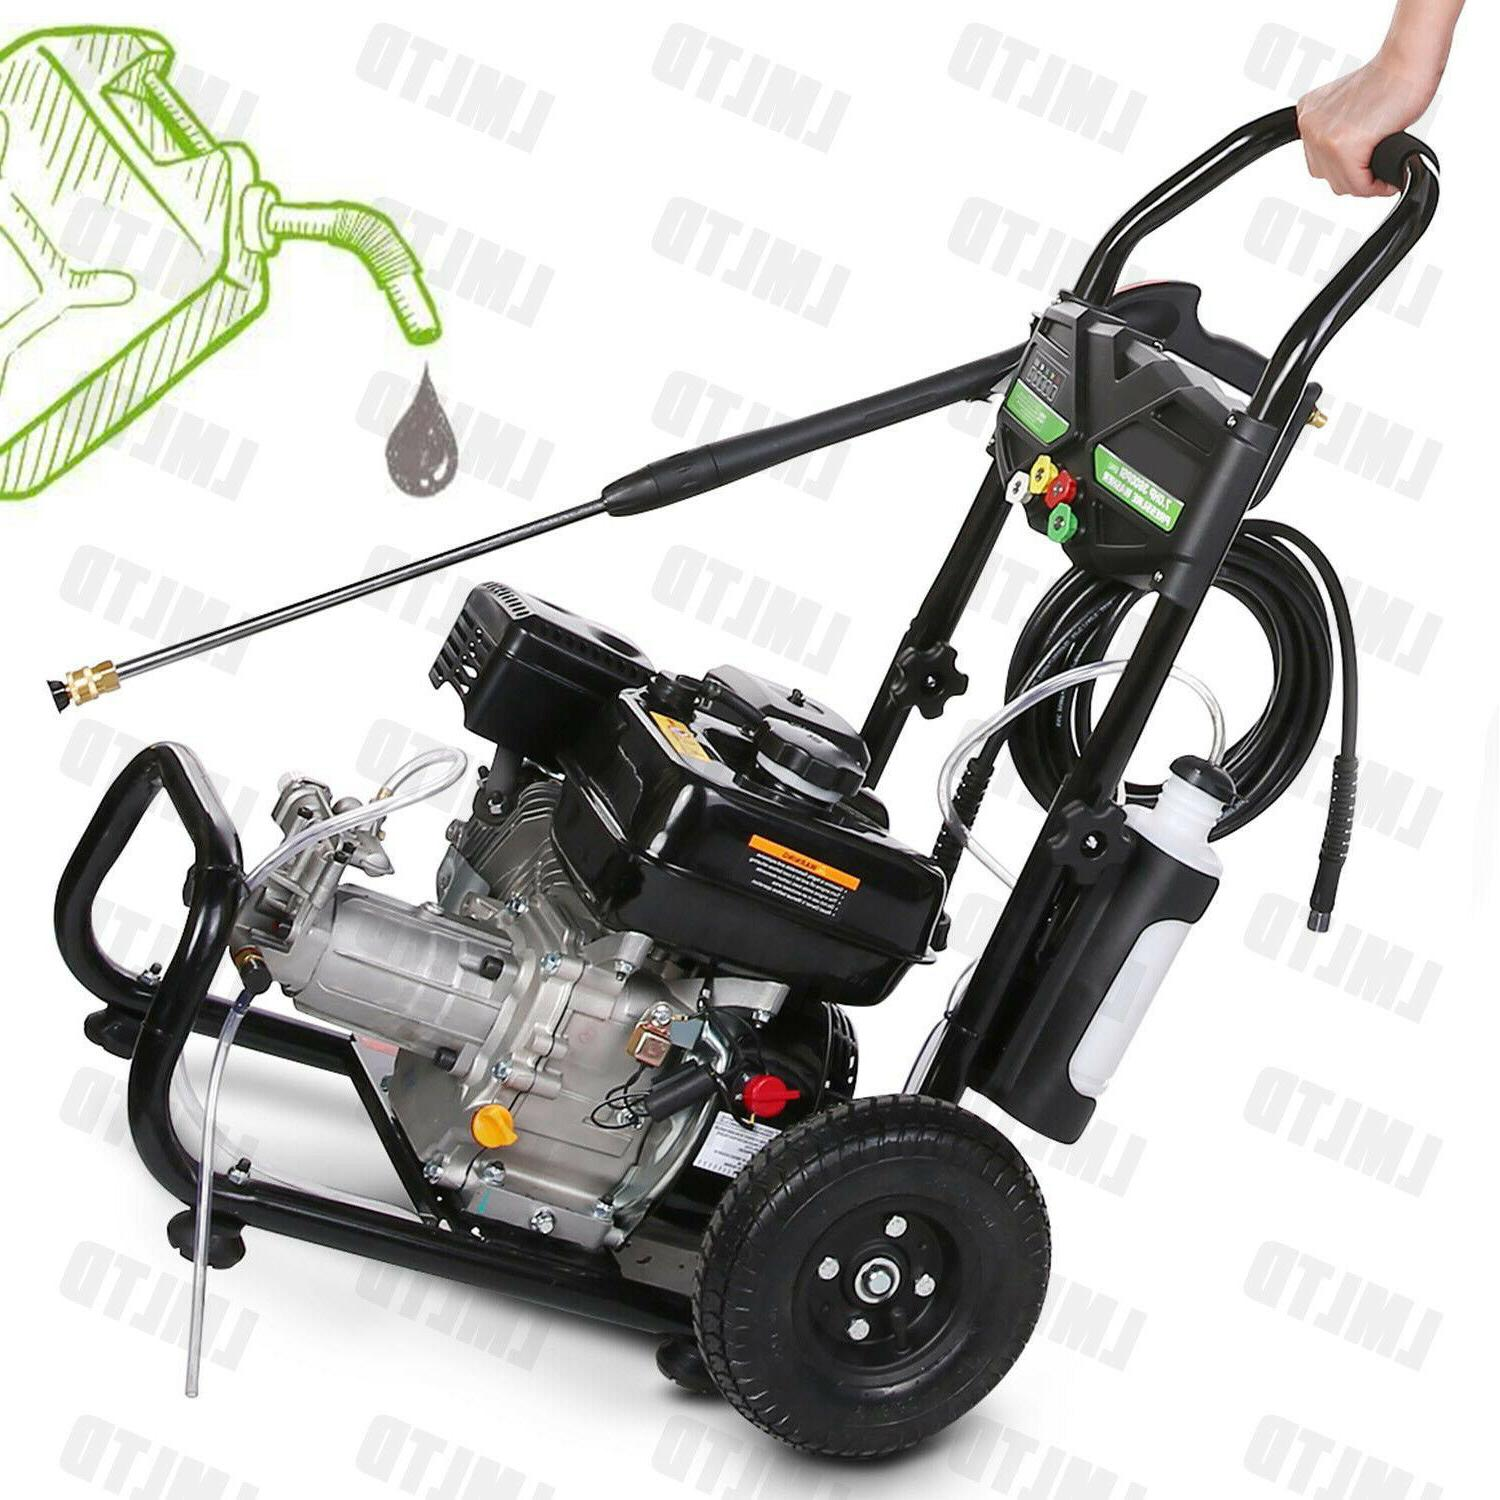 Washer Pattern Cleaner 3600 PSI 2.8GPM